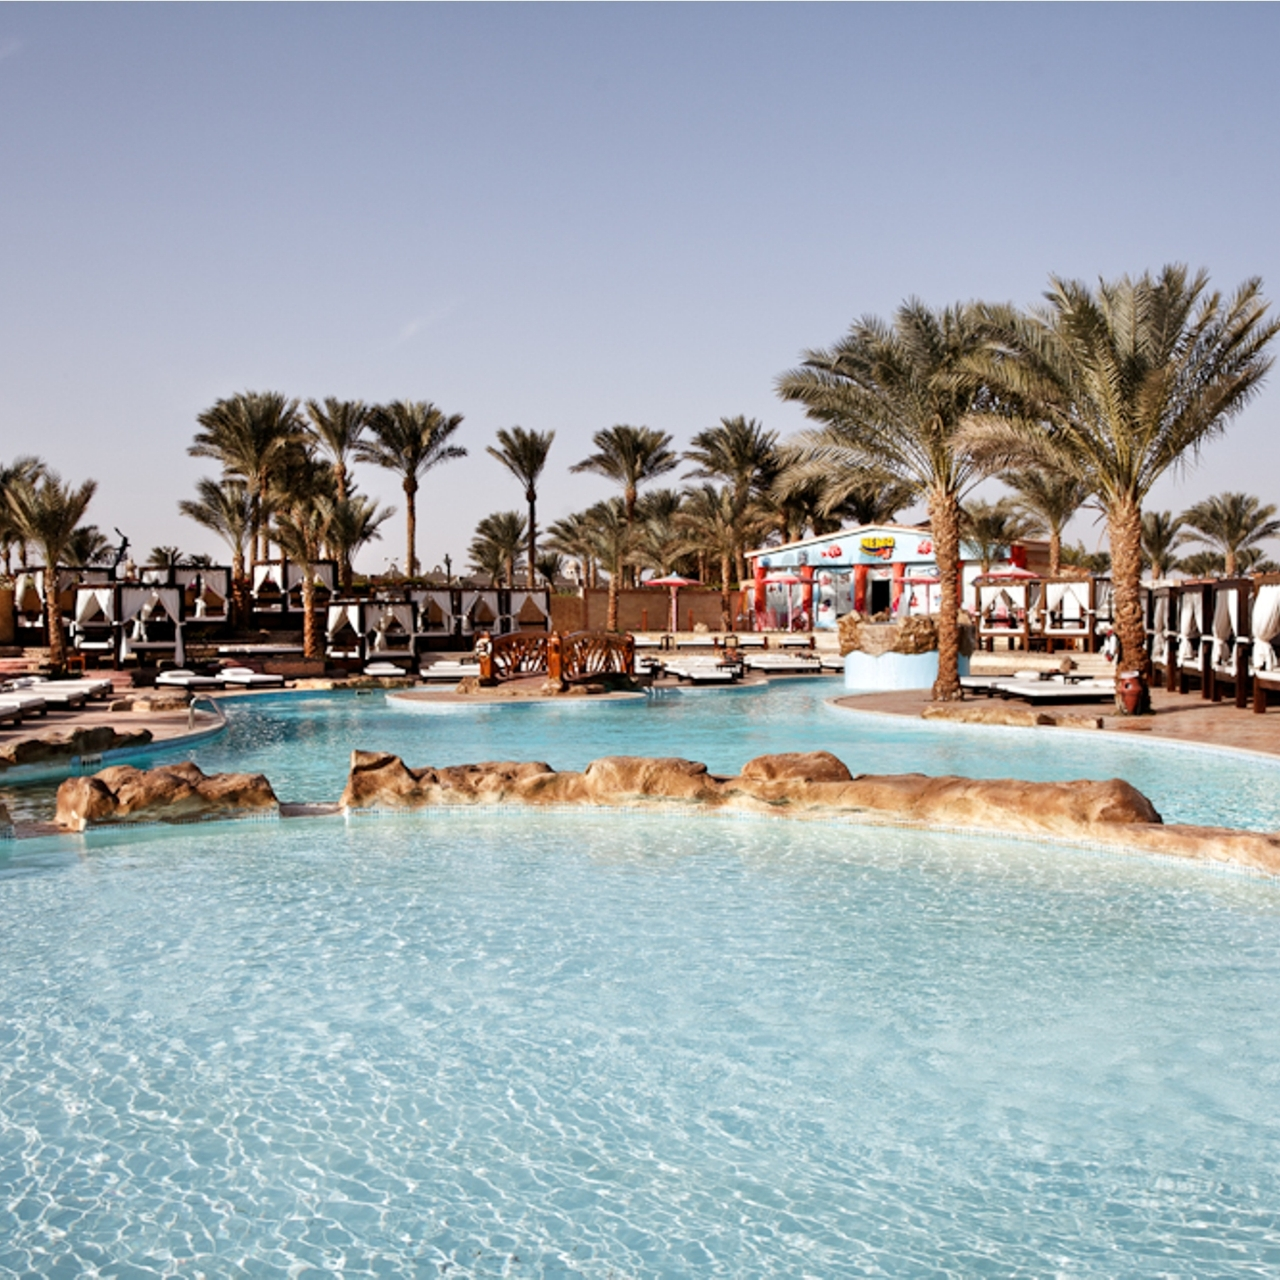 Hotel Dana Beach Resort Egypt At Hrs With Free Services